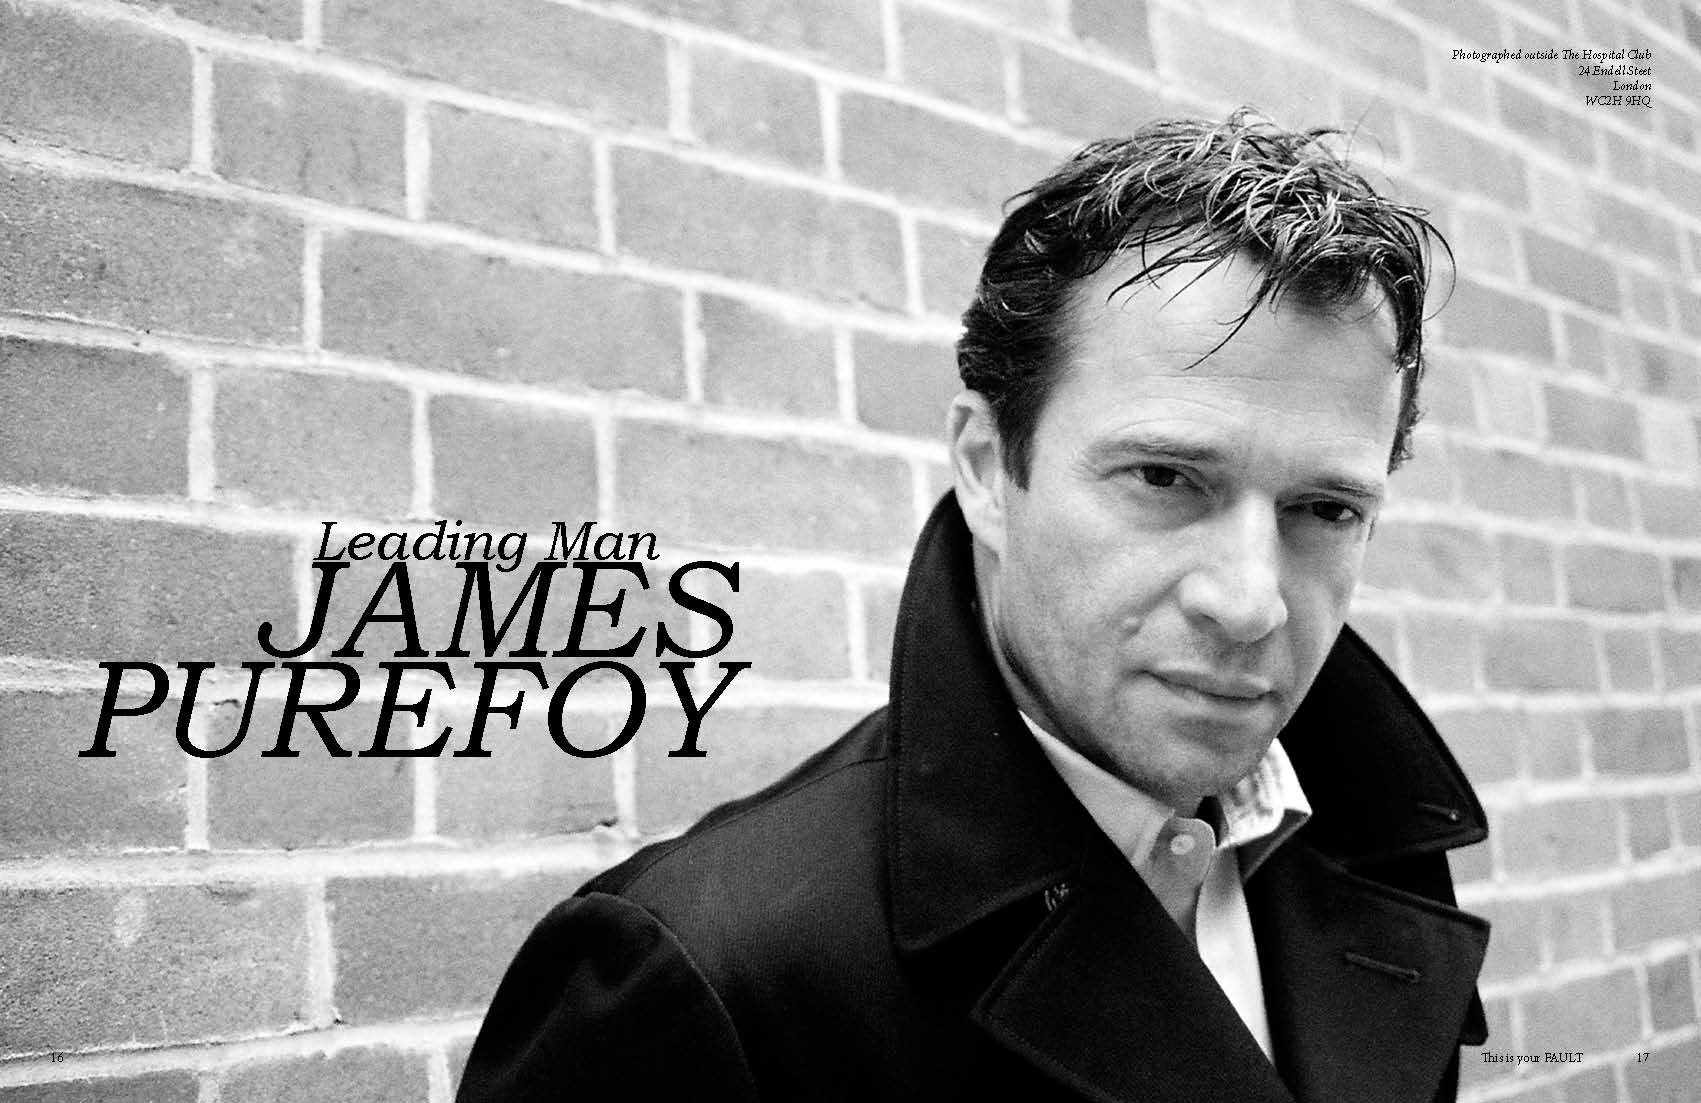 james purefoy instagram